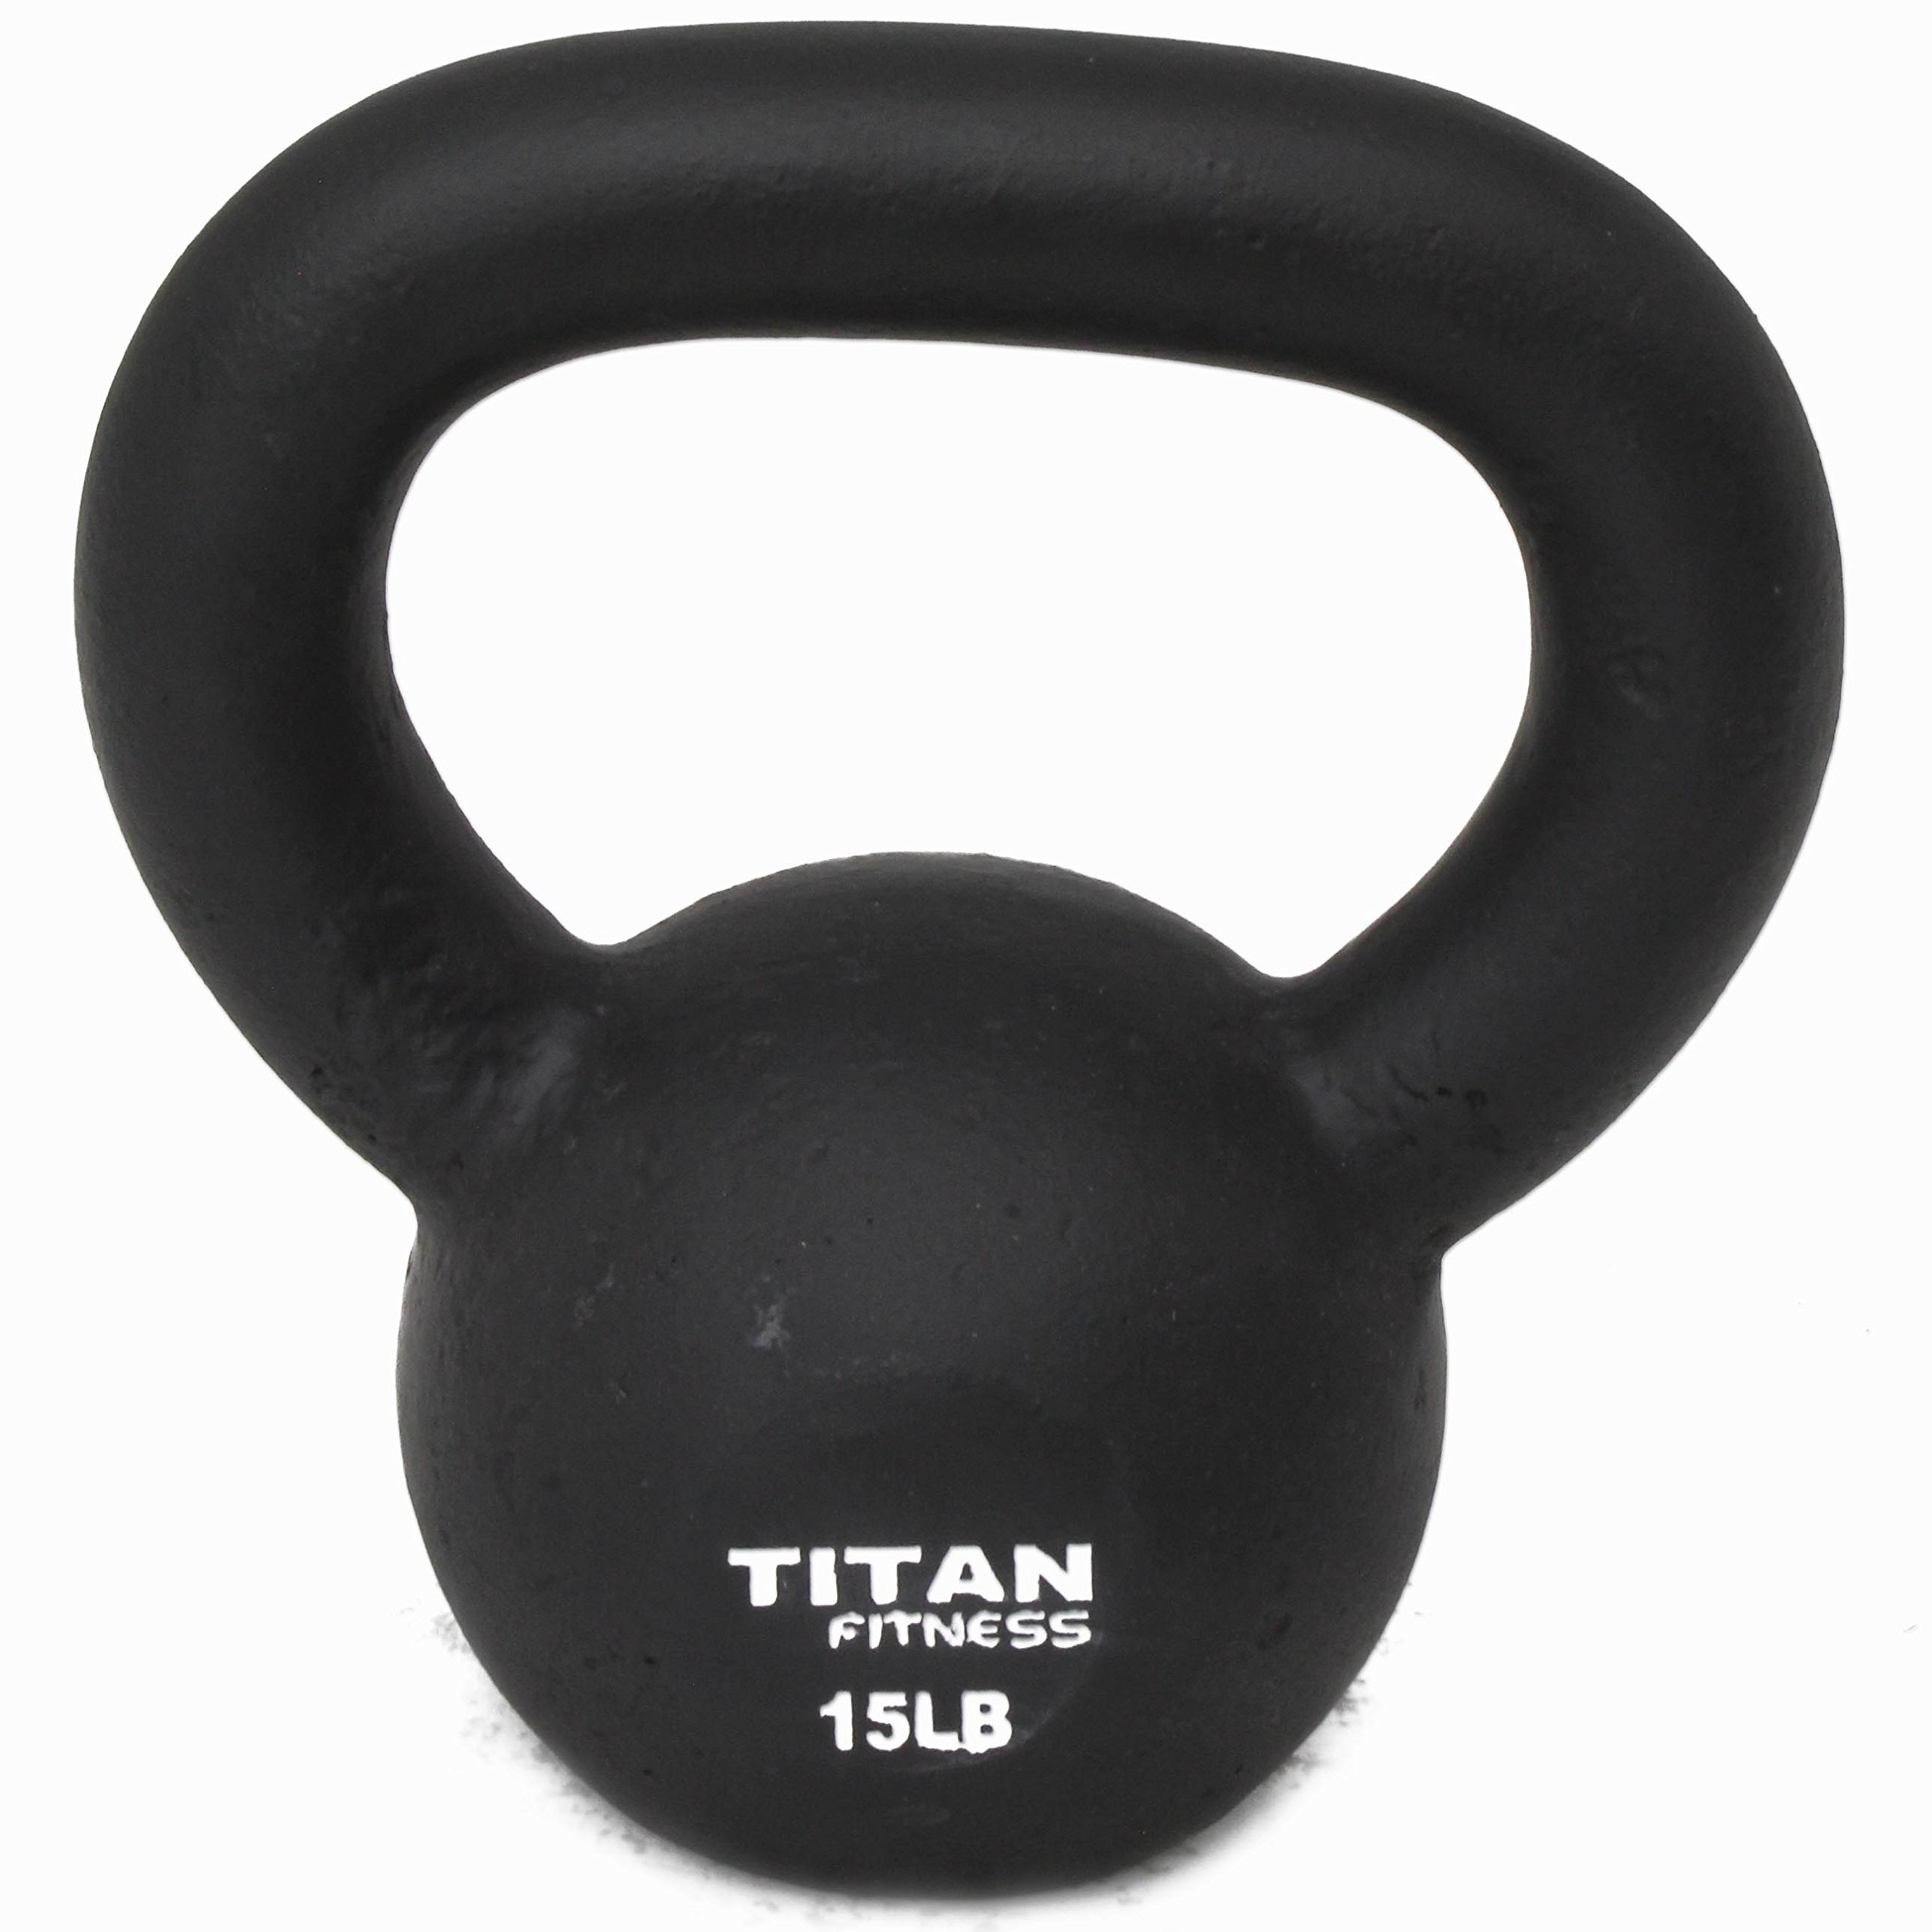 Titan Fitness Cast Iron Kettlebell Weight 15 Lbs Natural Solid Workout Swing by Titan Fitness